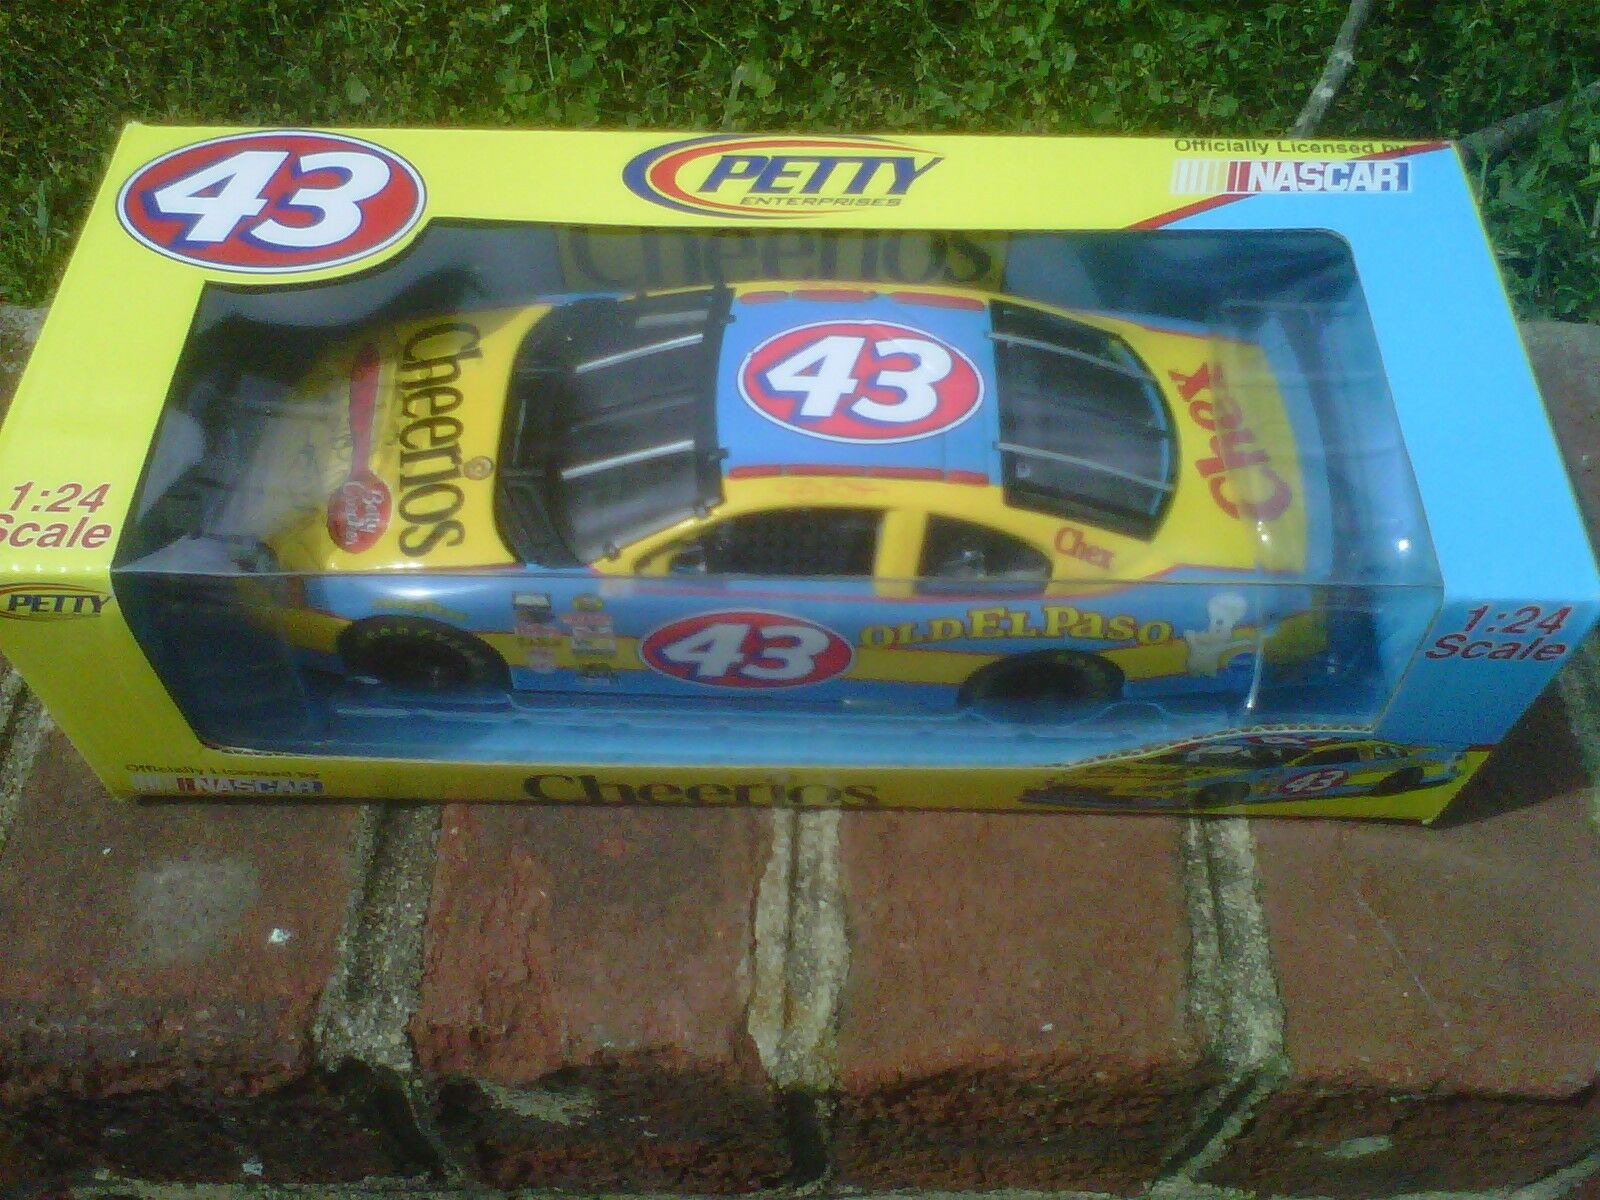 2004 Richard Petty Team Caliber 1 24 Cheerios Car Signed By Richard Petty